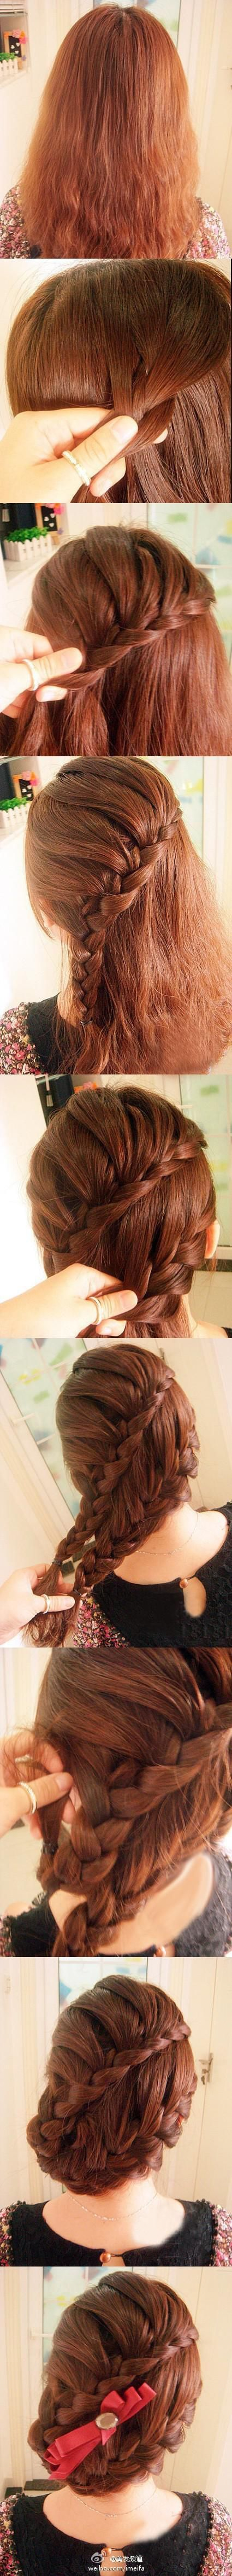 Gonna have Mo do this to my hair!!